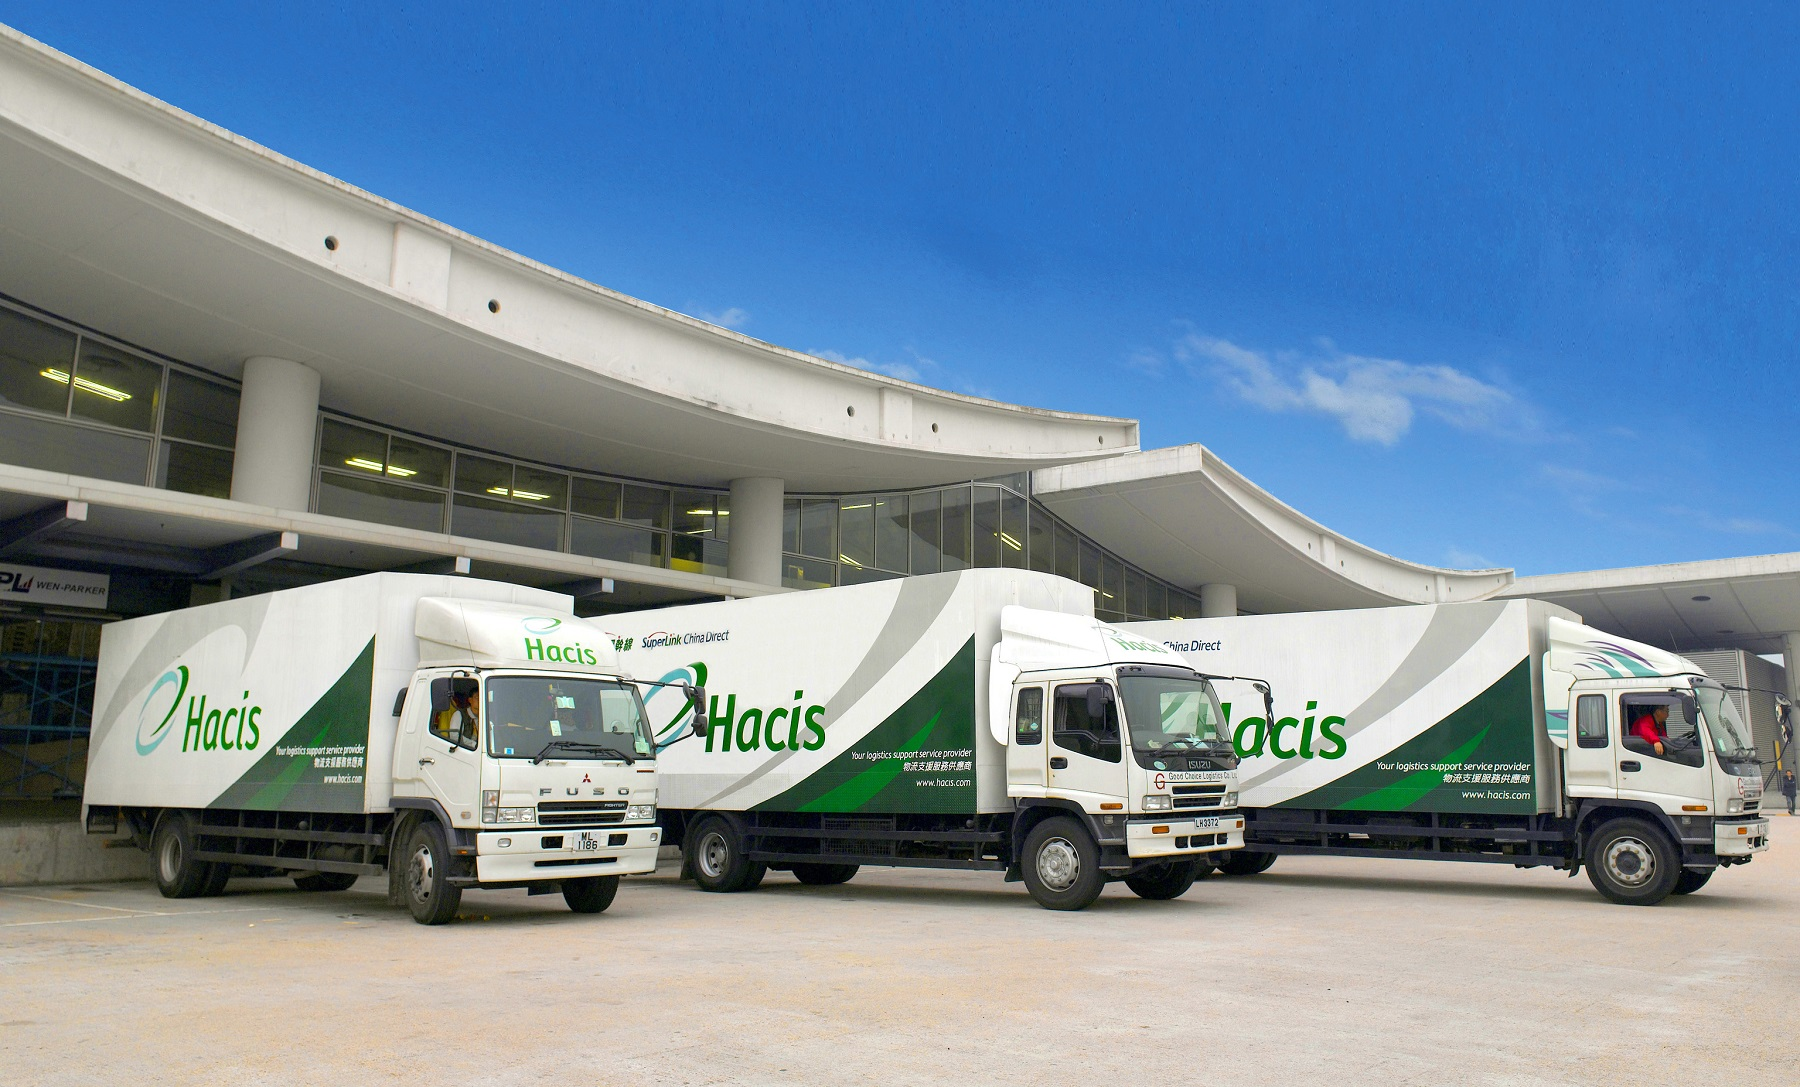 Hacis extends RFS to western PRD